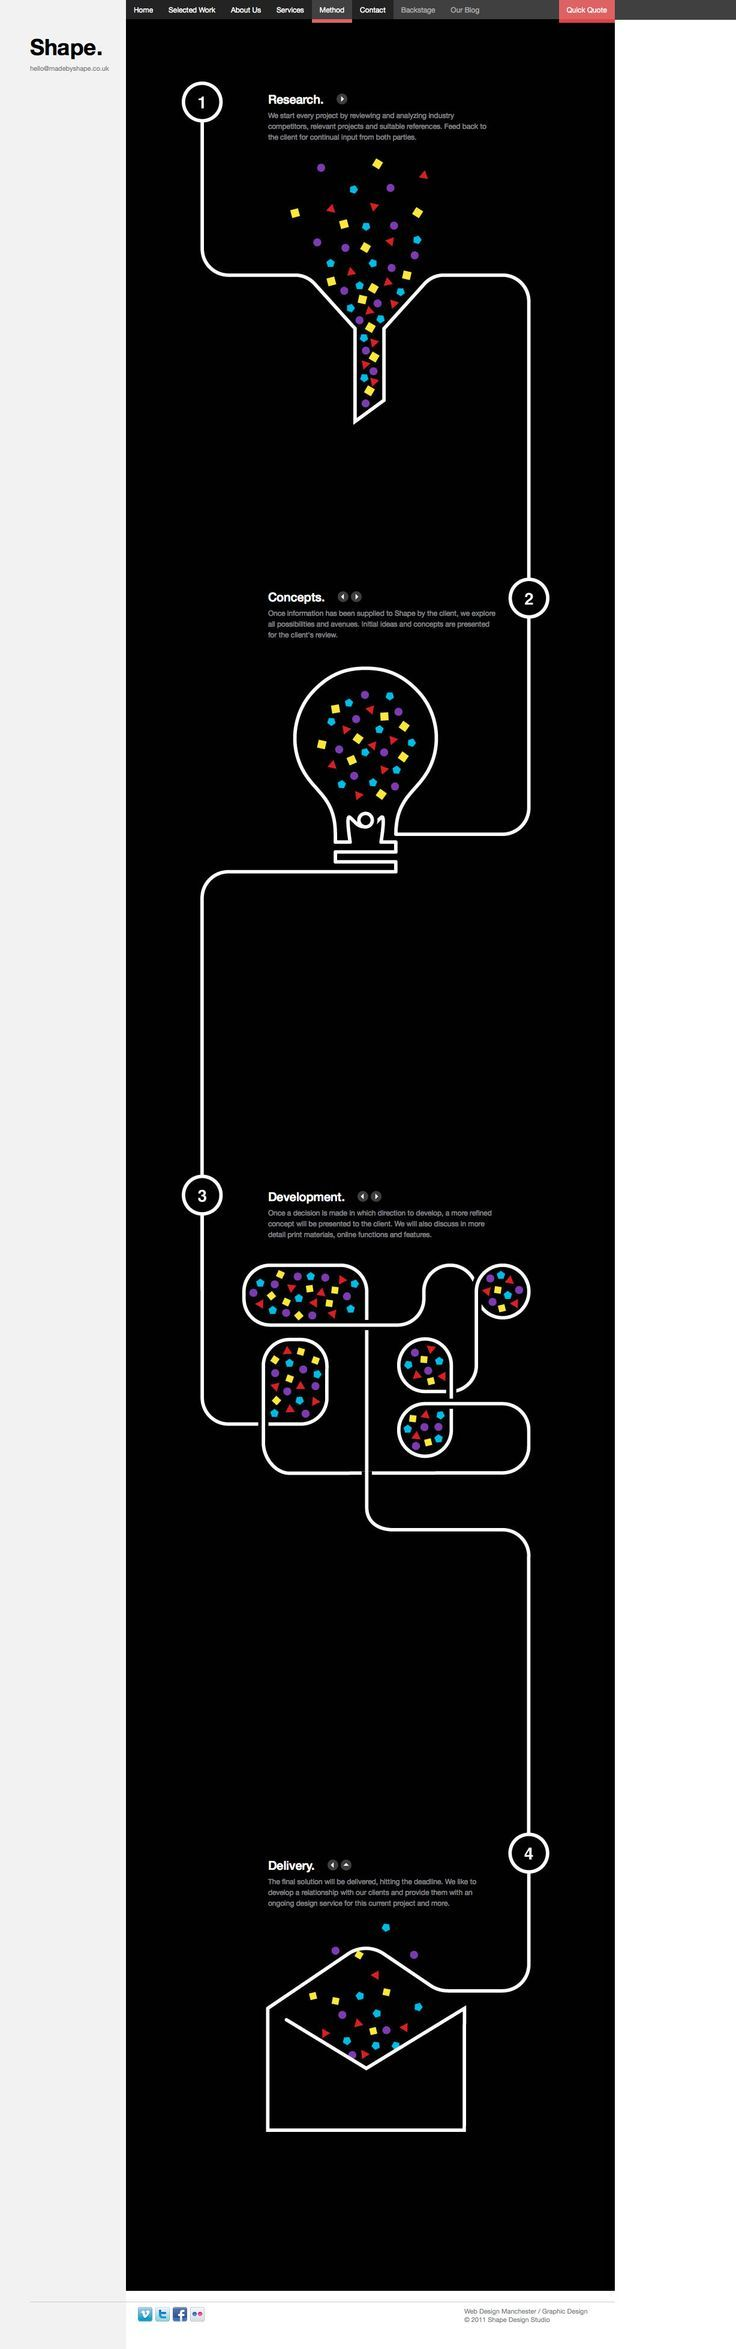 Made by Shape like they line design as a simple explanatory digram #infographics